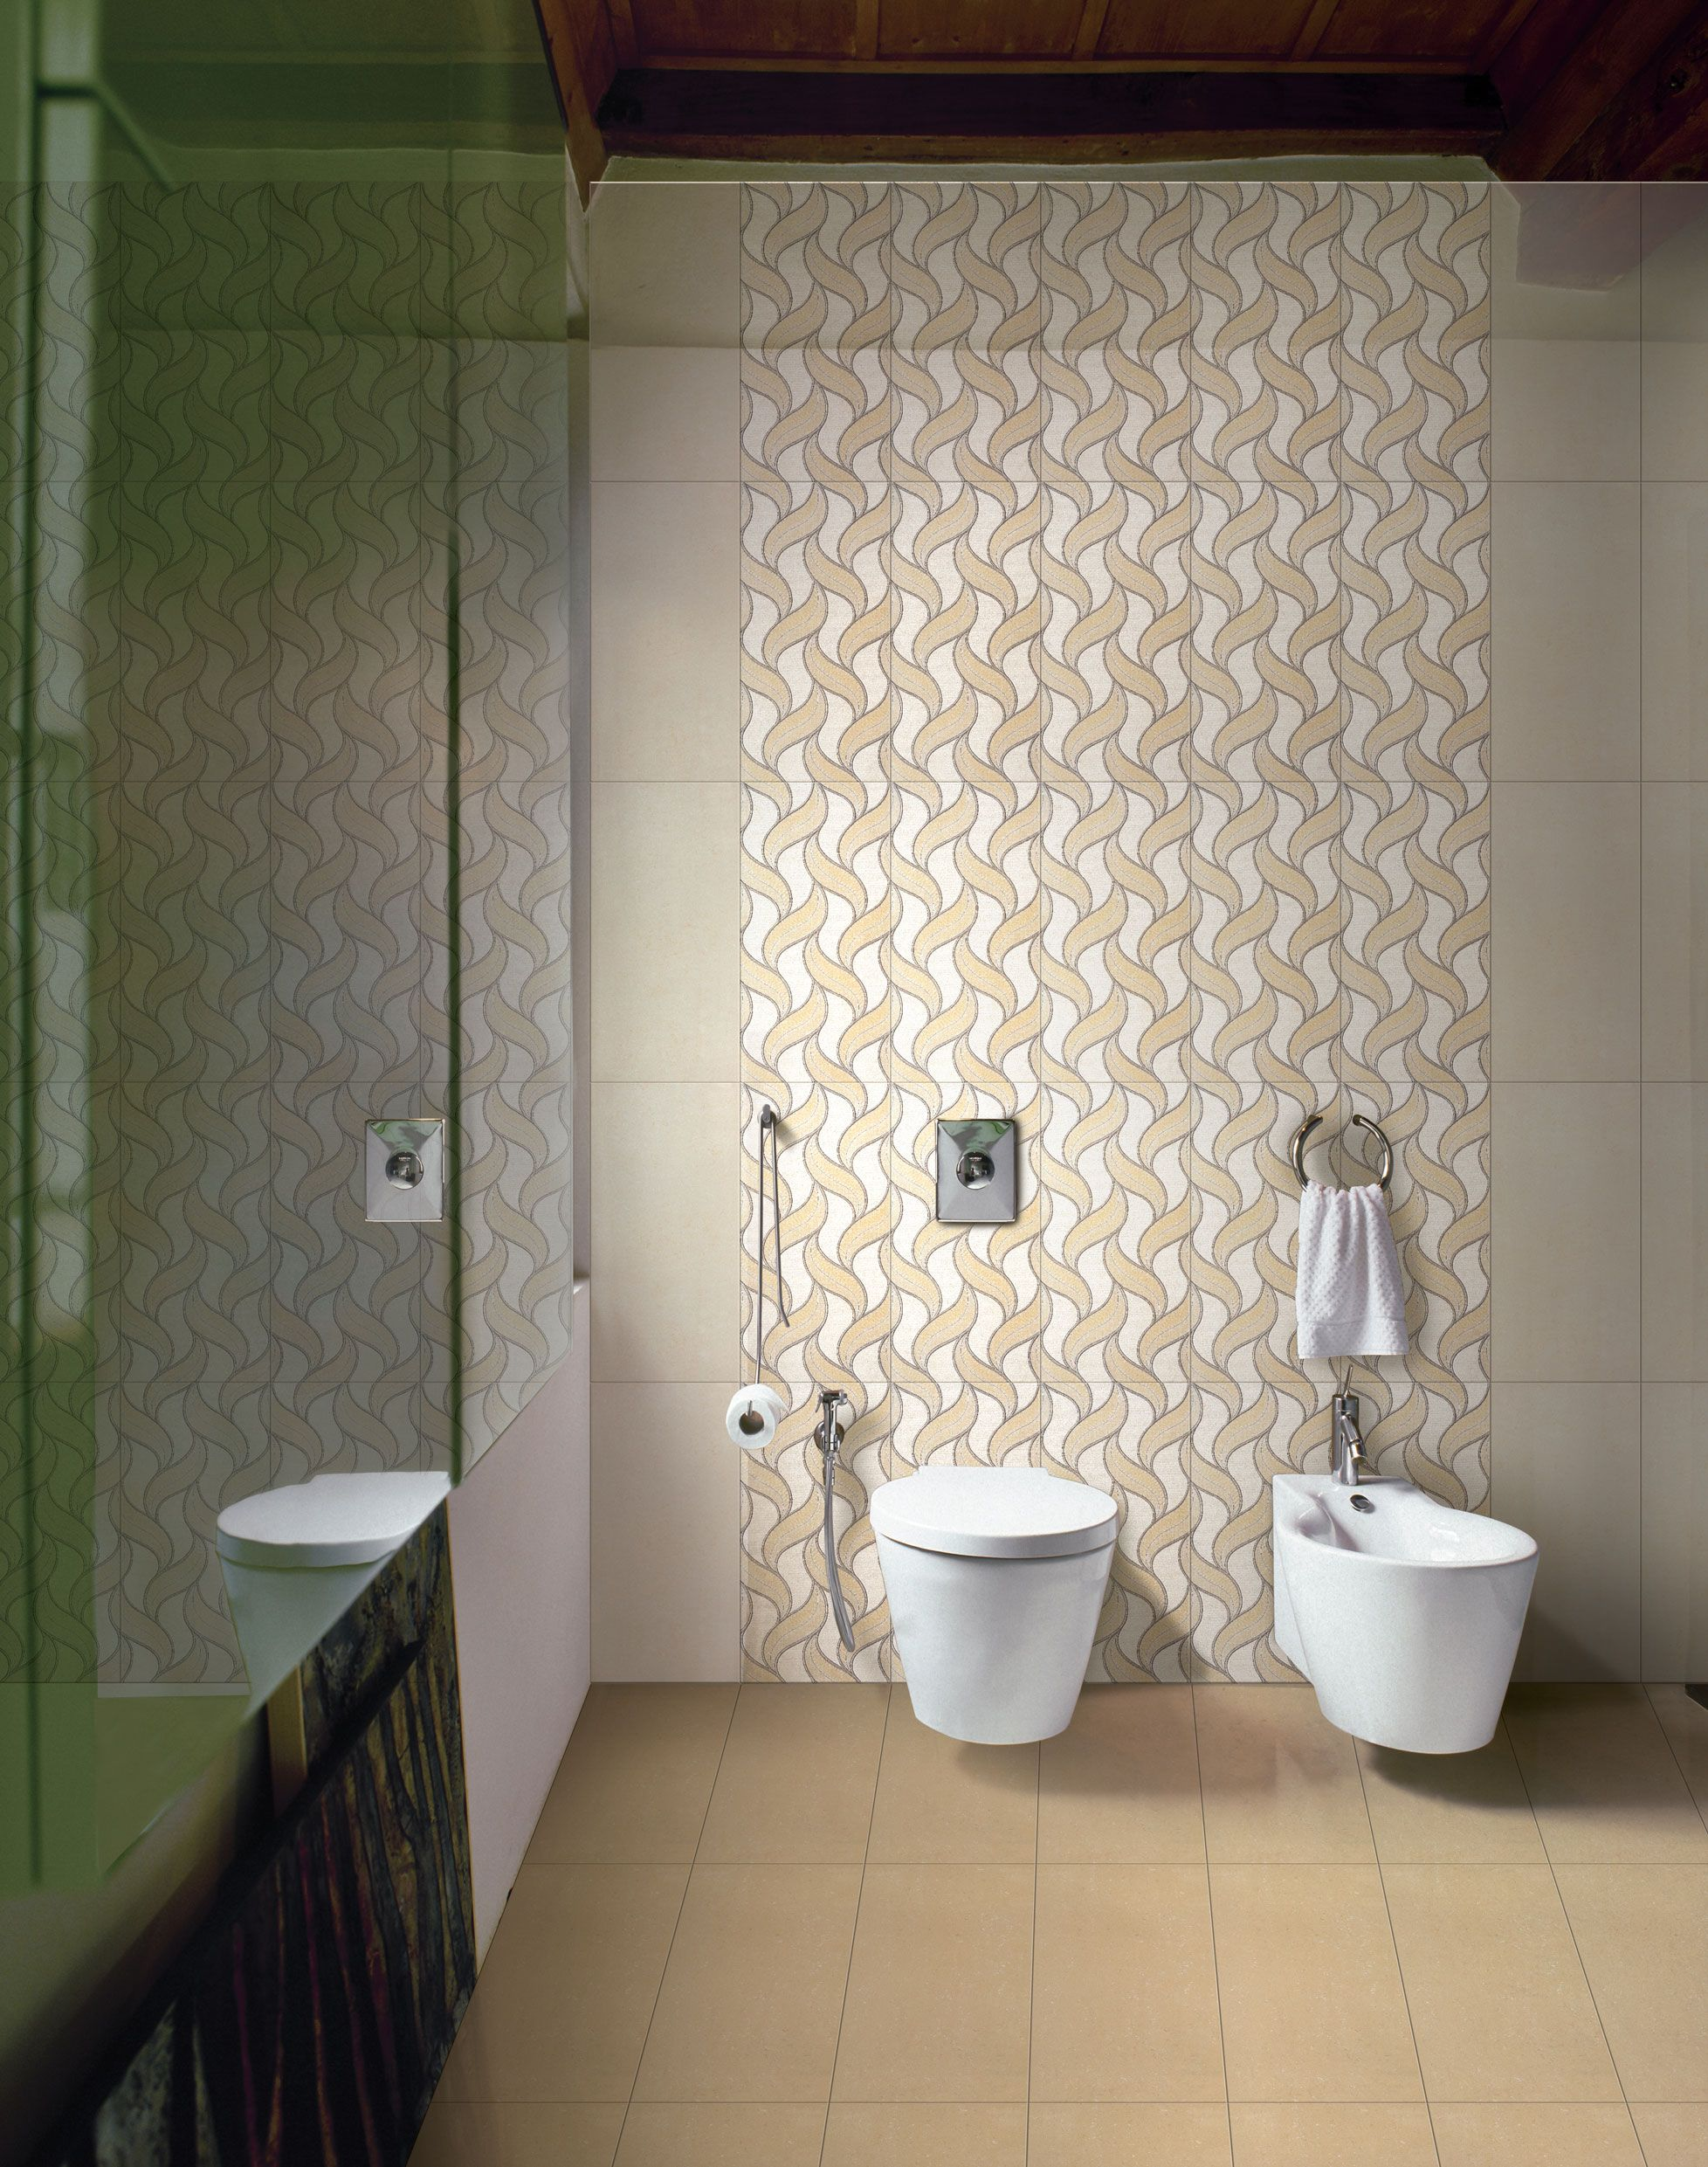 Buy designer floor wall tiles for bathroom bedroom for Designer bathroom flooring